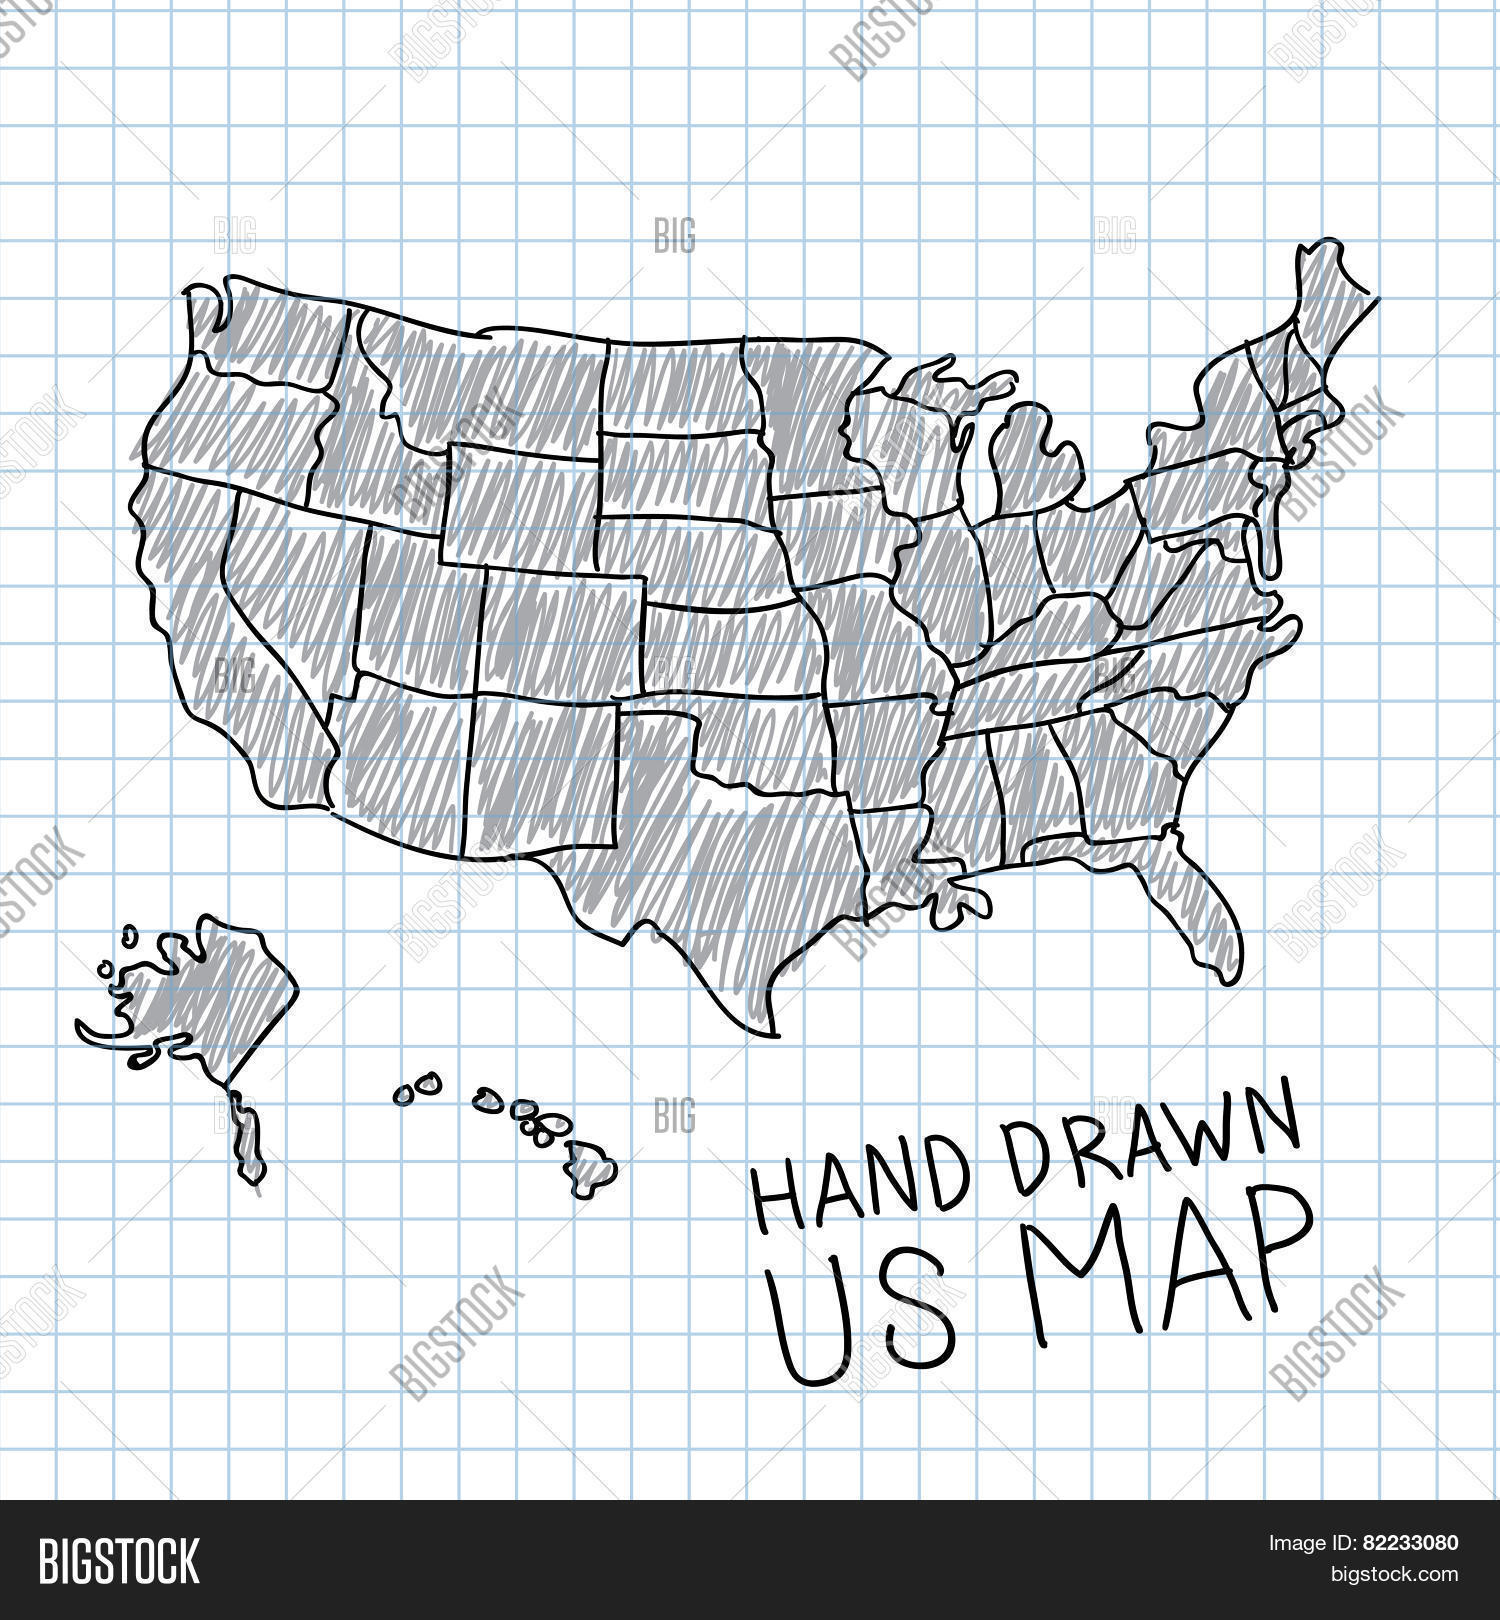 Hand Drawn US Map Vector & Photo (Free Trial) | Bigstock